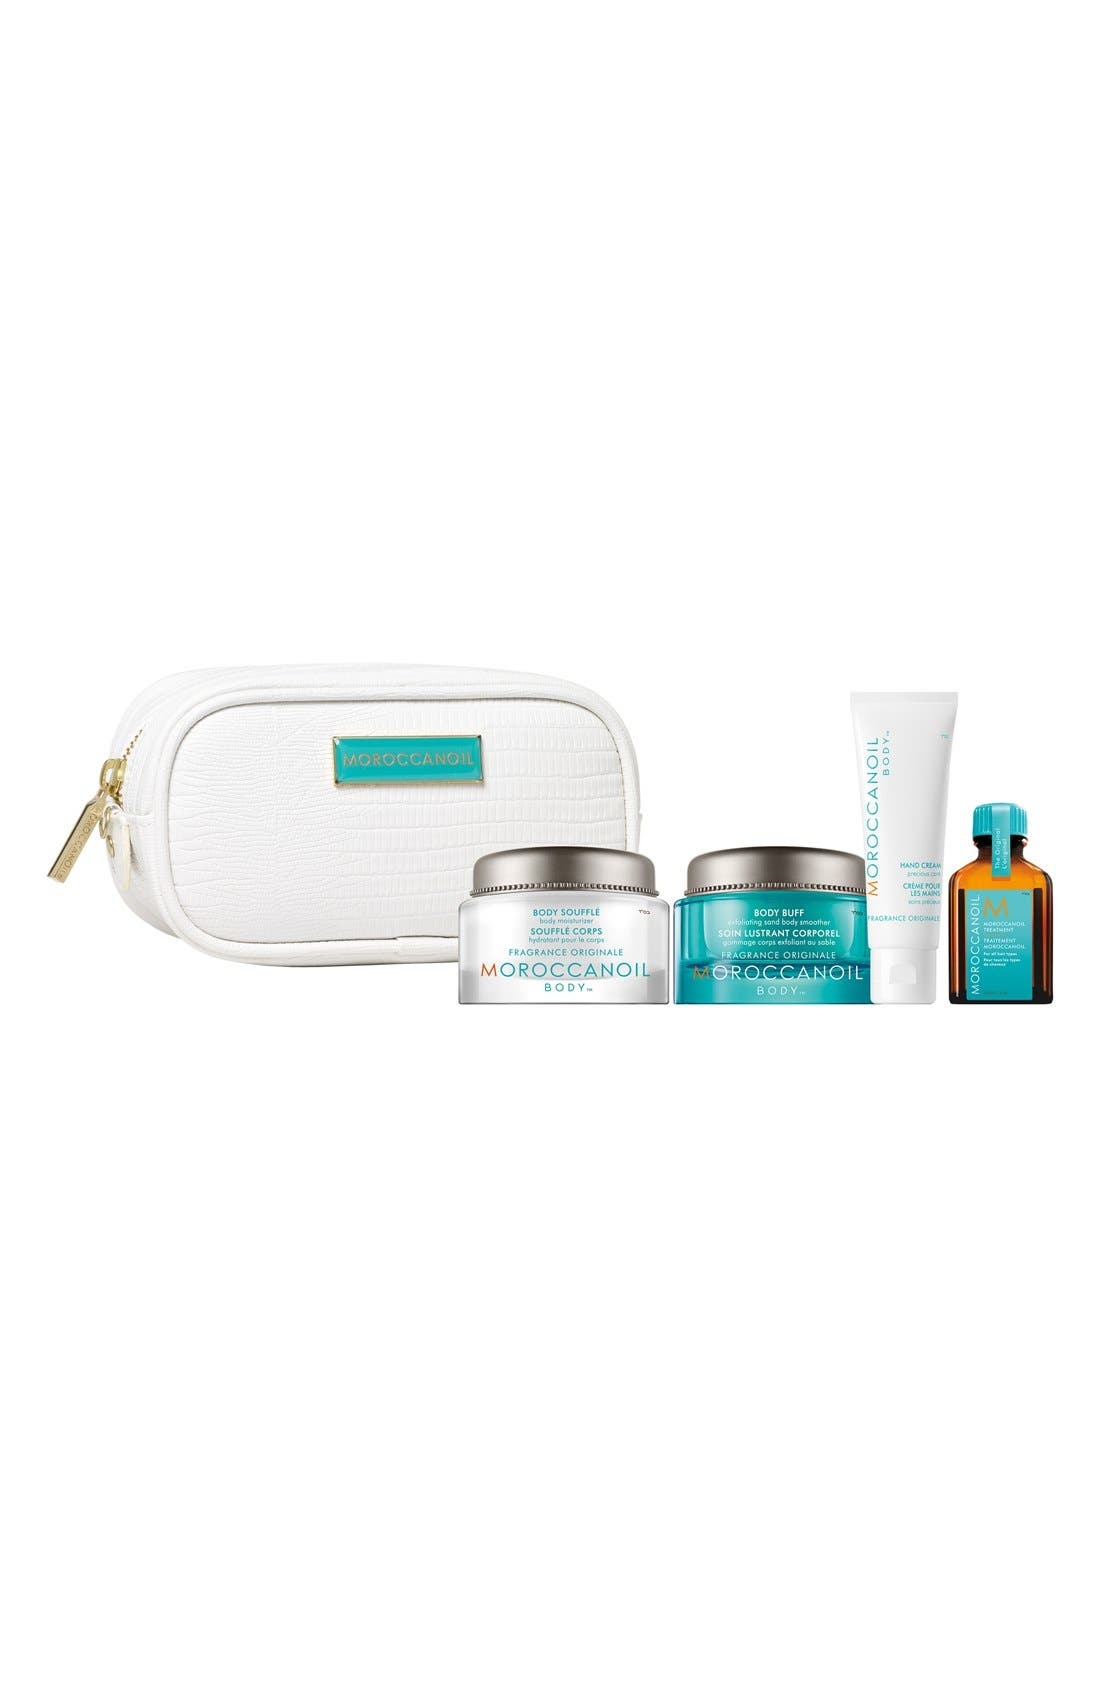 MOROCCANOIL® Little Luxury Fragrance Originale Set ($56 Value)